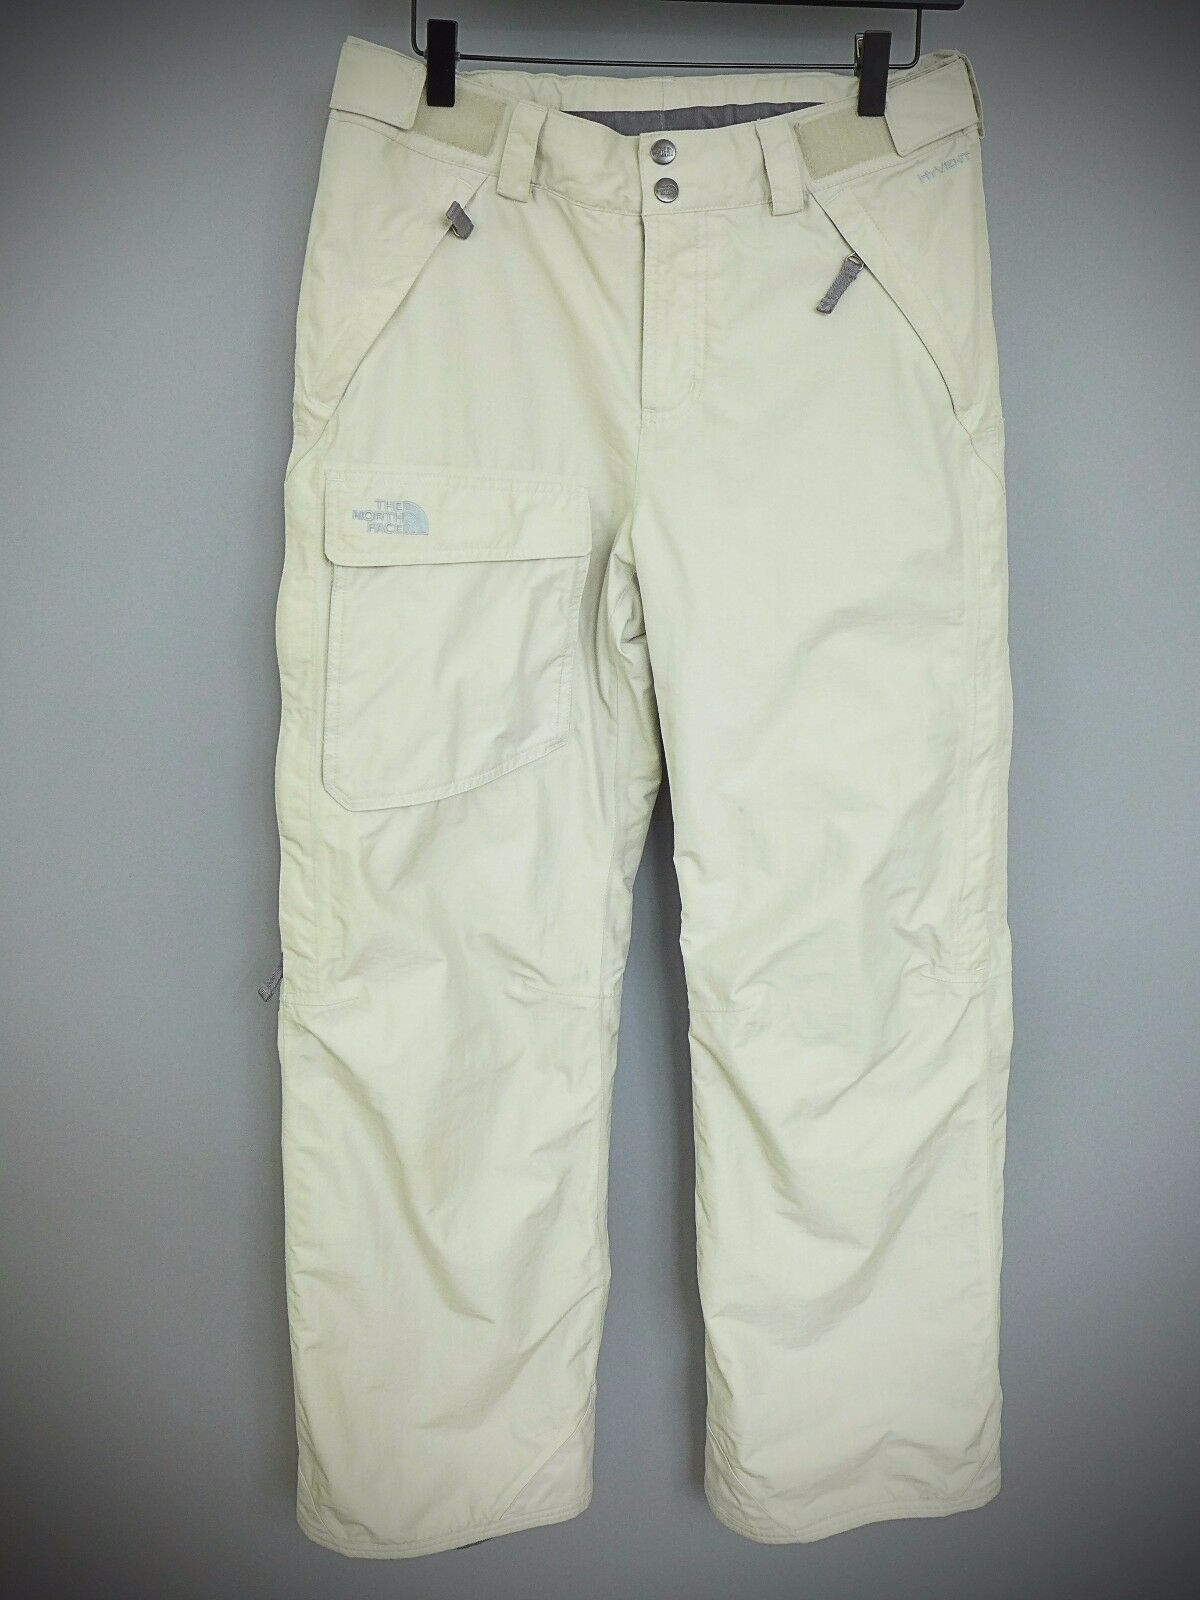 XII298 Women The North Face HyVent Skiing Snowboarding Trousers  S W30 L29  best choice